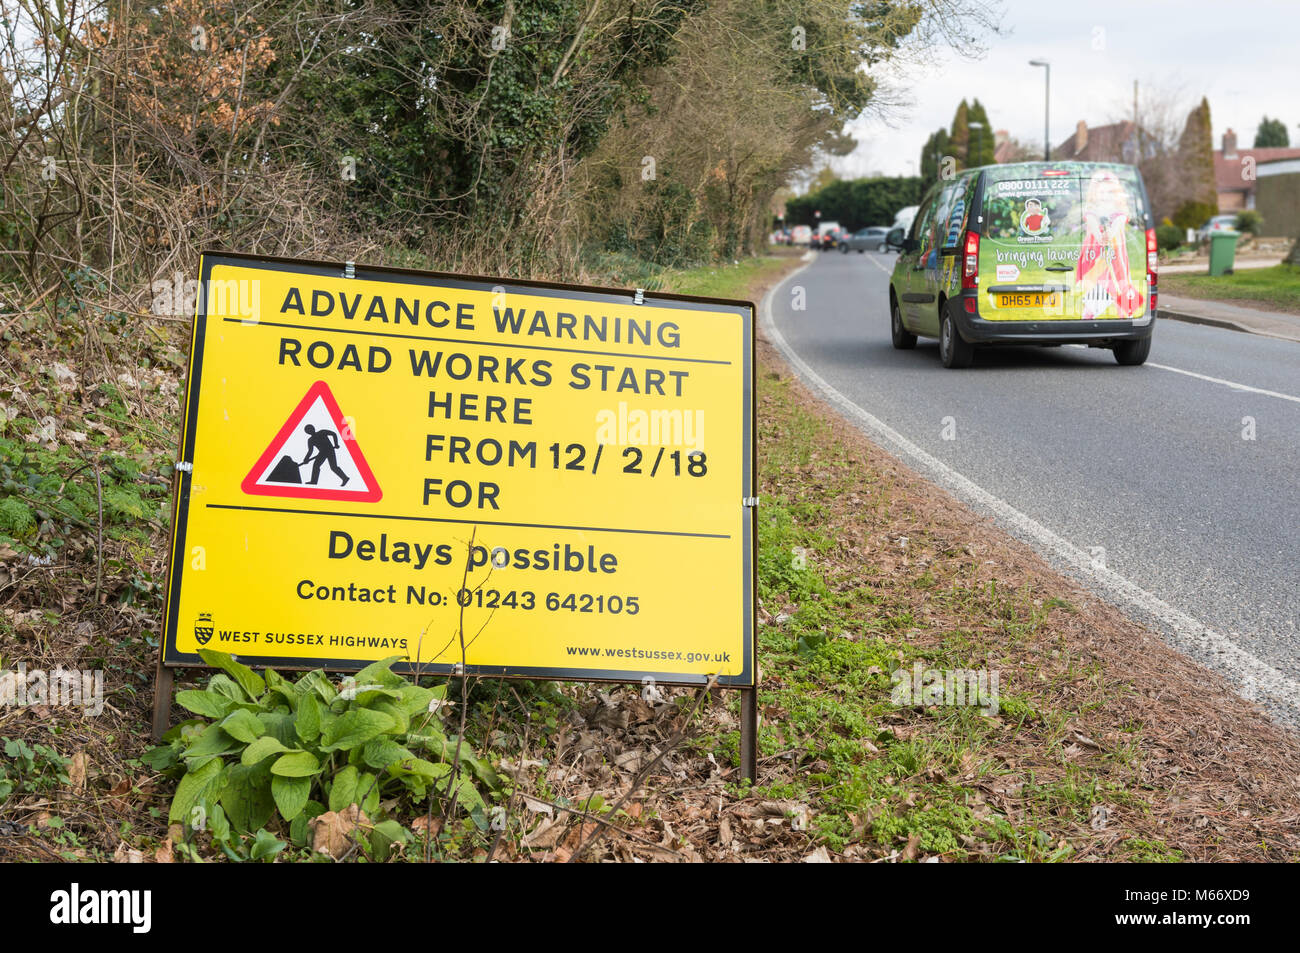 Yellow advance warning roadside sign to warn of delays due to road works starting in Angmering, West Sussex, England, - Stock Image